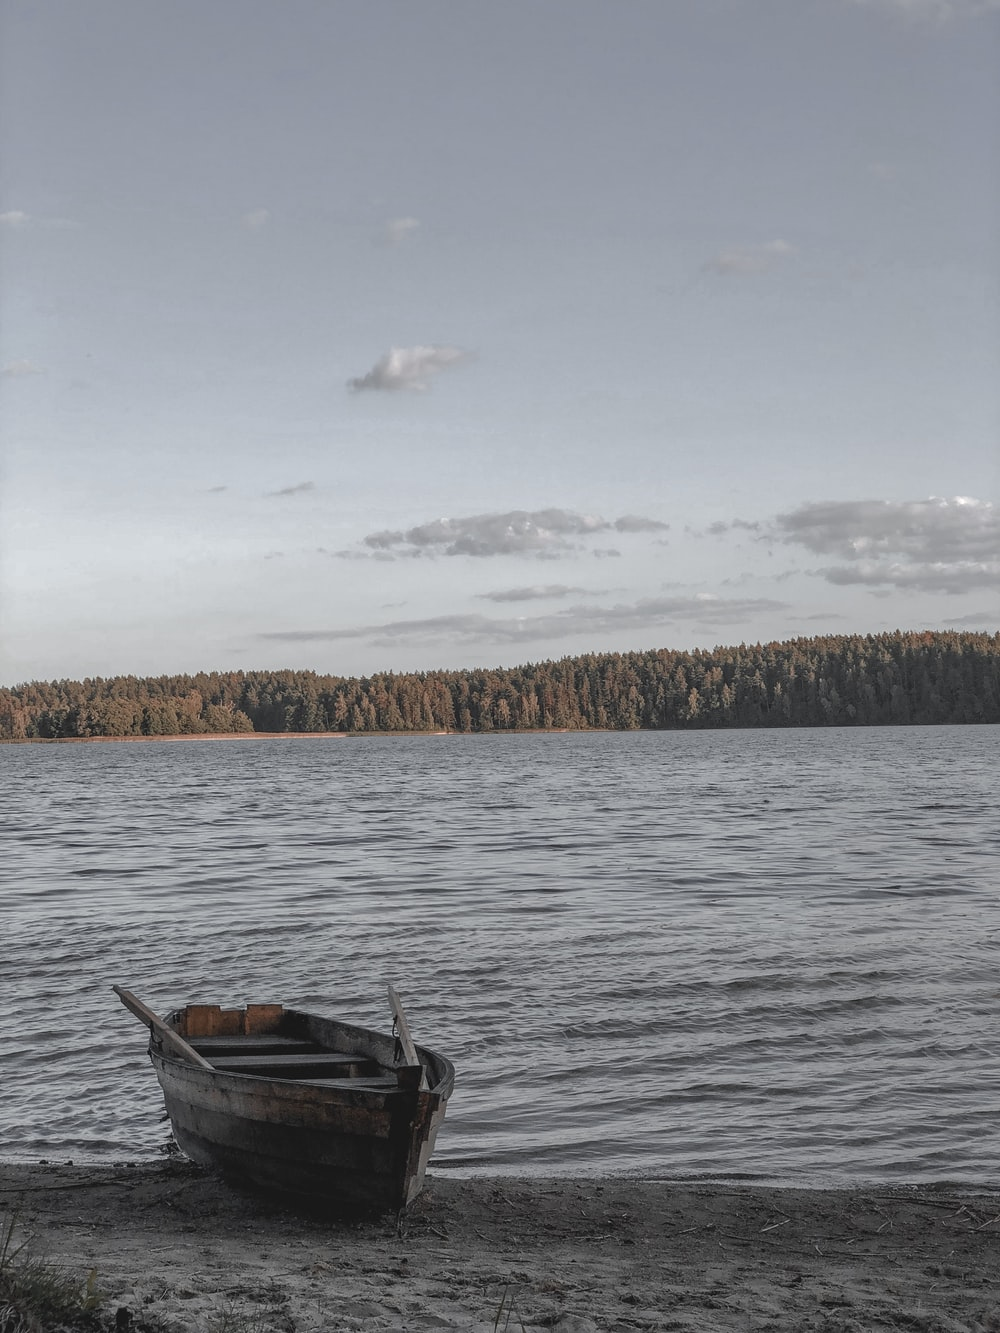 brown boat on body of water during daytime